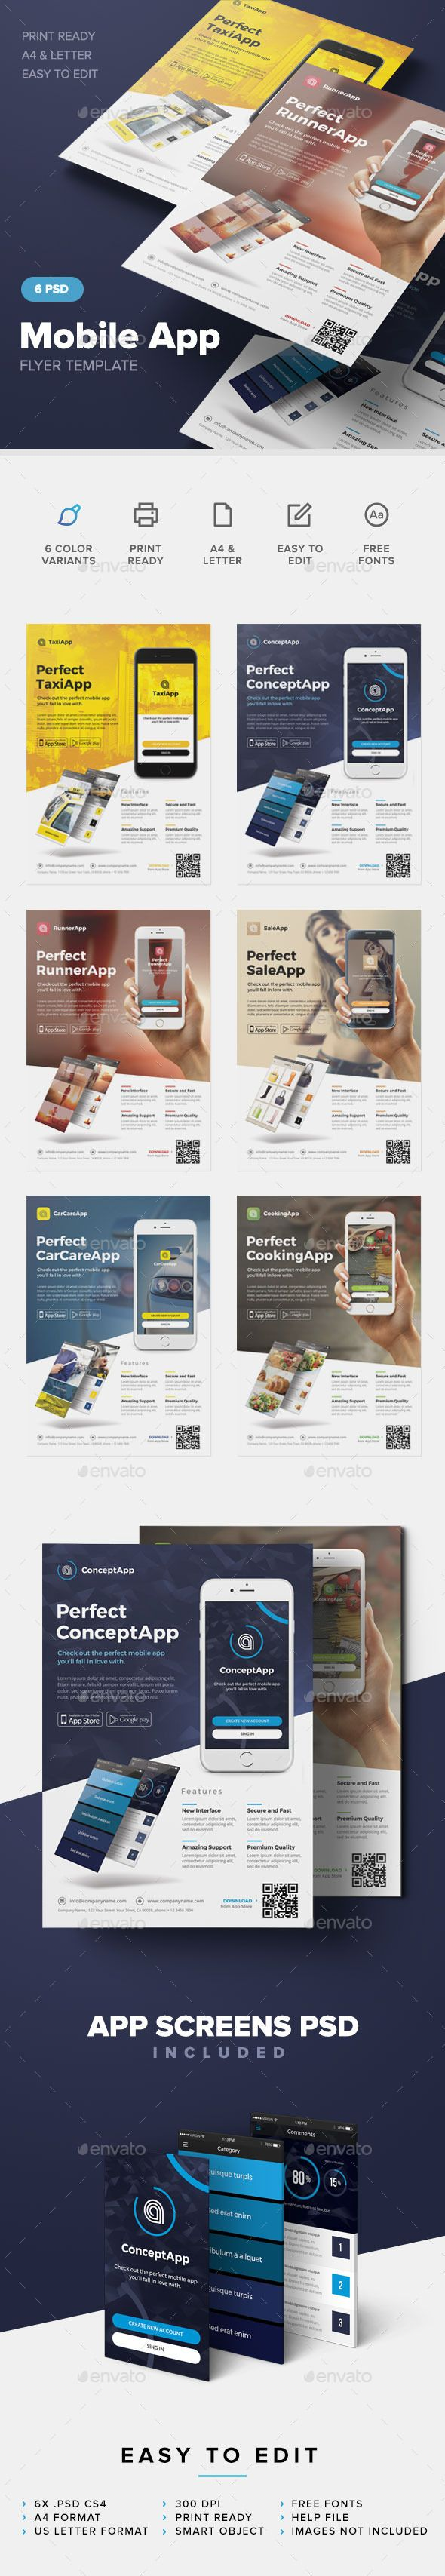 #Mobile App Flyer Template - Commerce Flyers Download here: https://graphicriver.net/item/mobile-app-flyer-template/12649951?reff=Classicdesignp